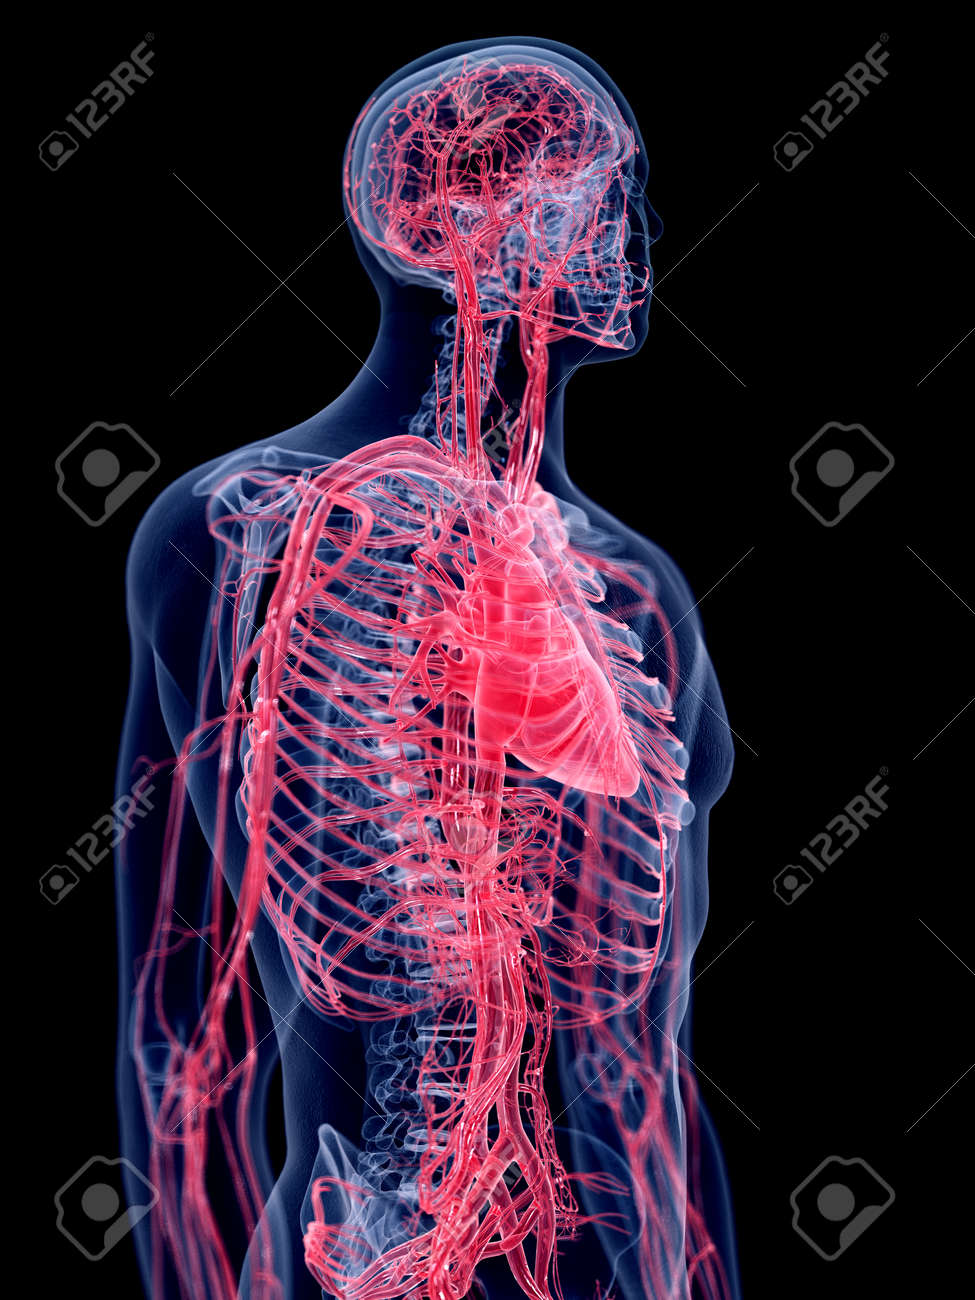 human vascular anatomy diagram guitar wiring 1 humbucker volume 3d rendered medically accurate illustration of the system stock 110234327